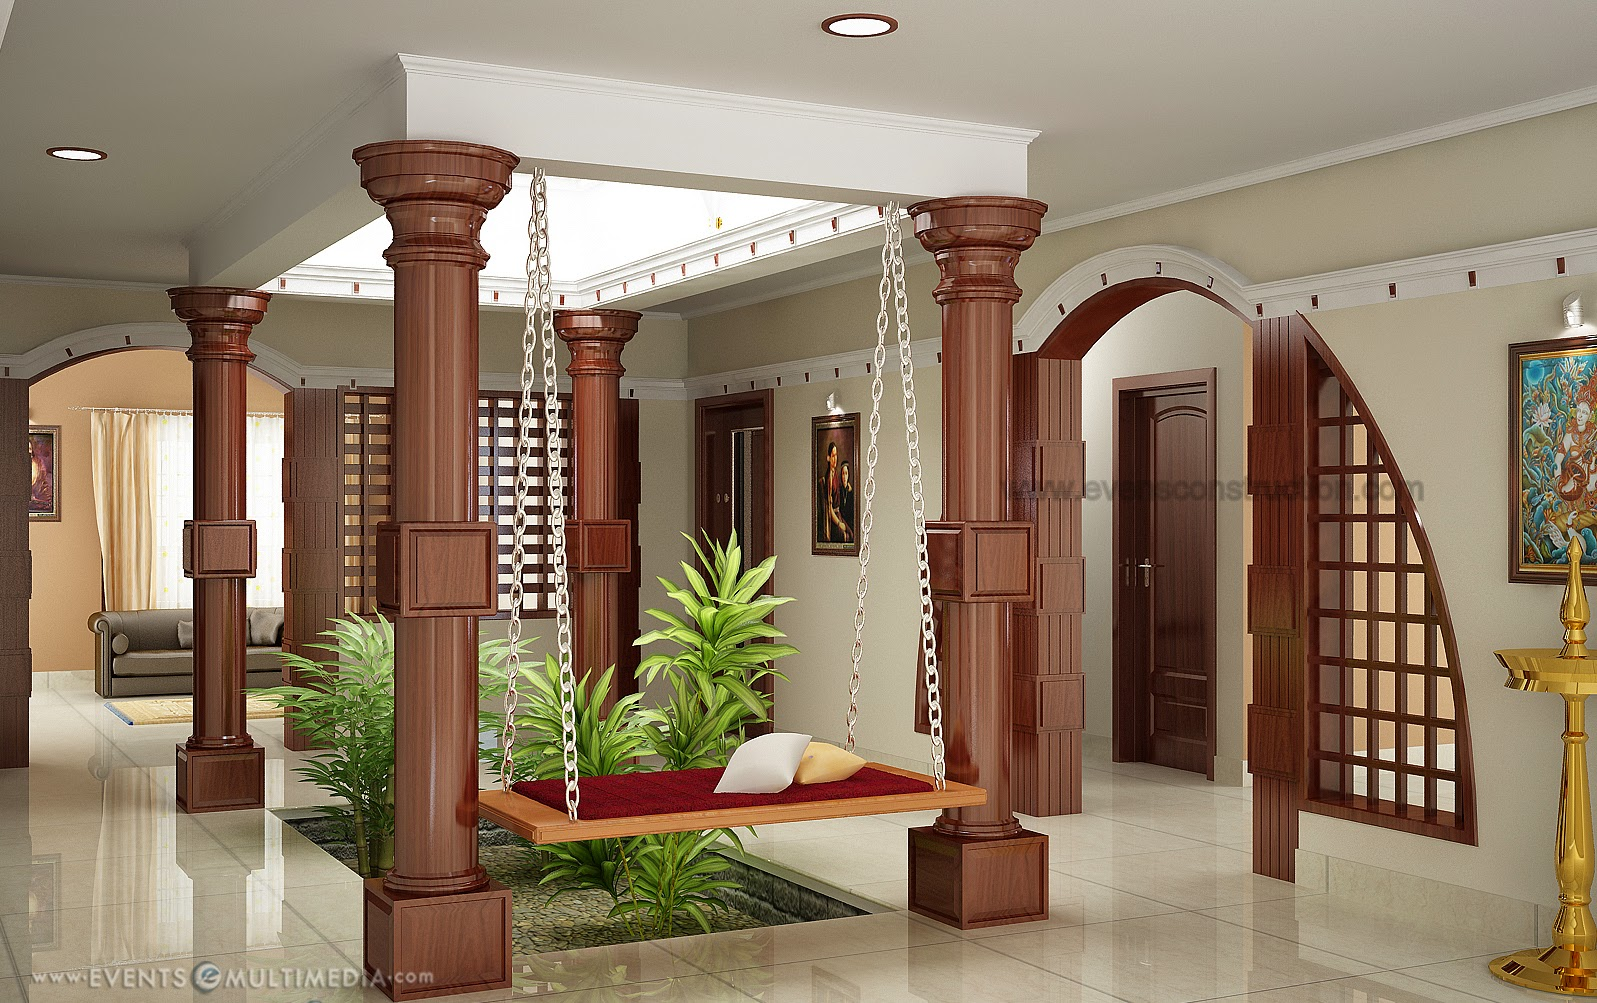 Courtyard For Kerala House Home: indoor courtyard house plans